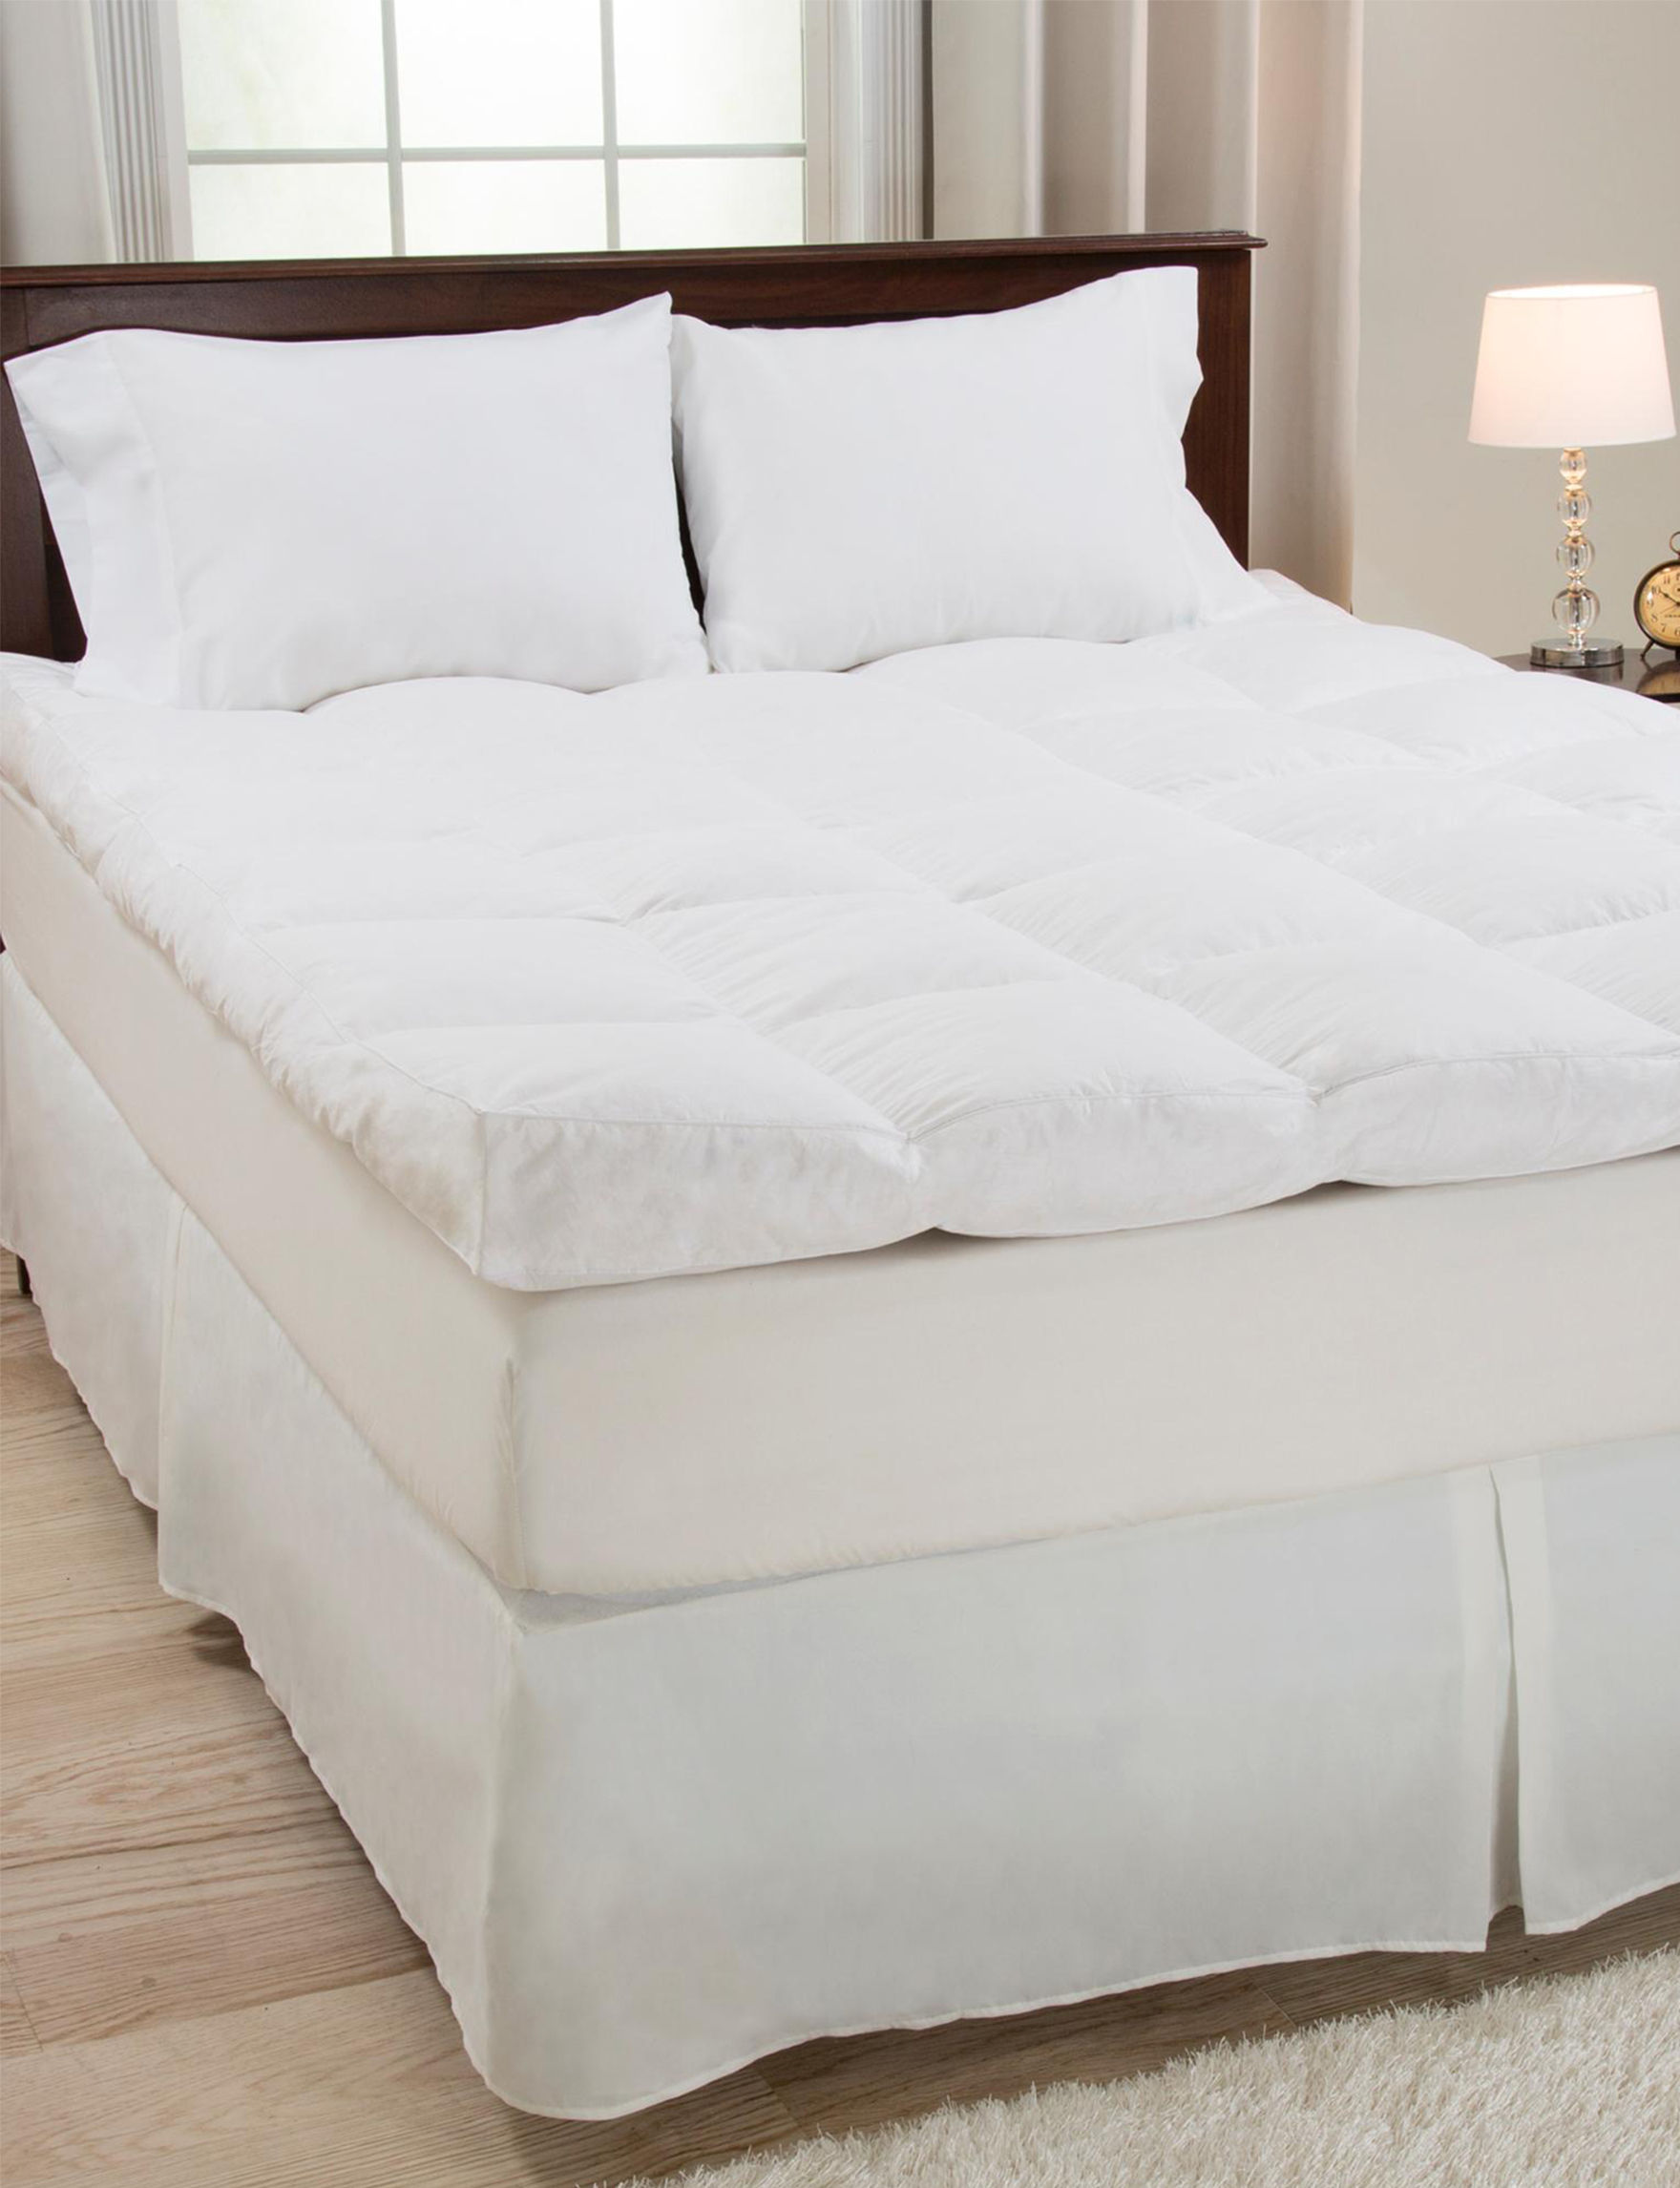 Lavish Home White Mattress Pads & Toppers